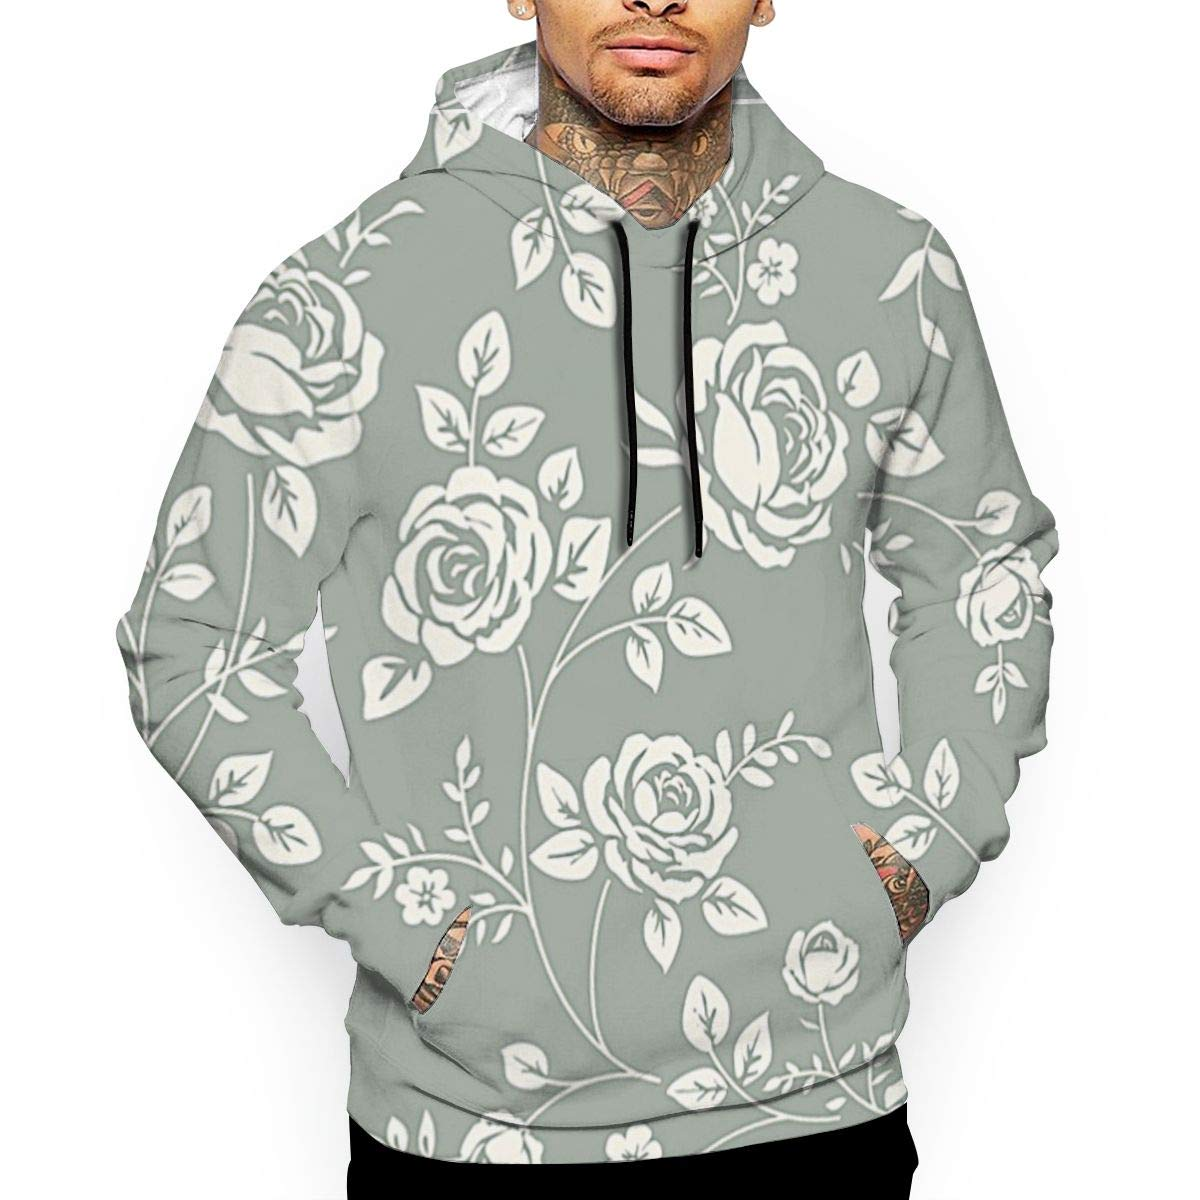 Vintage Rose Print Sweaters With Pockets Hoodie Fashion